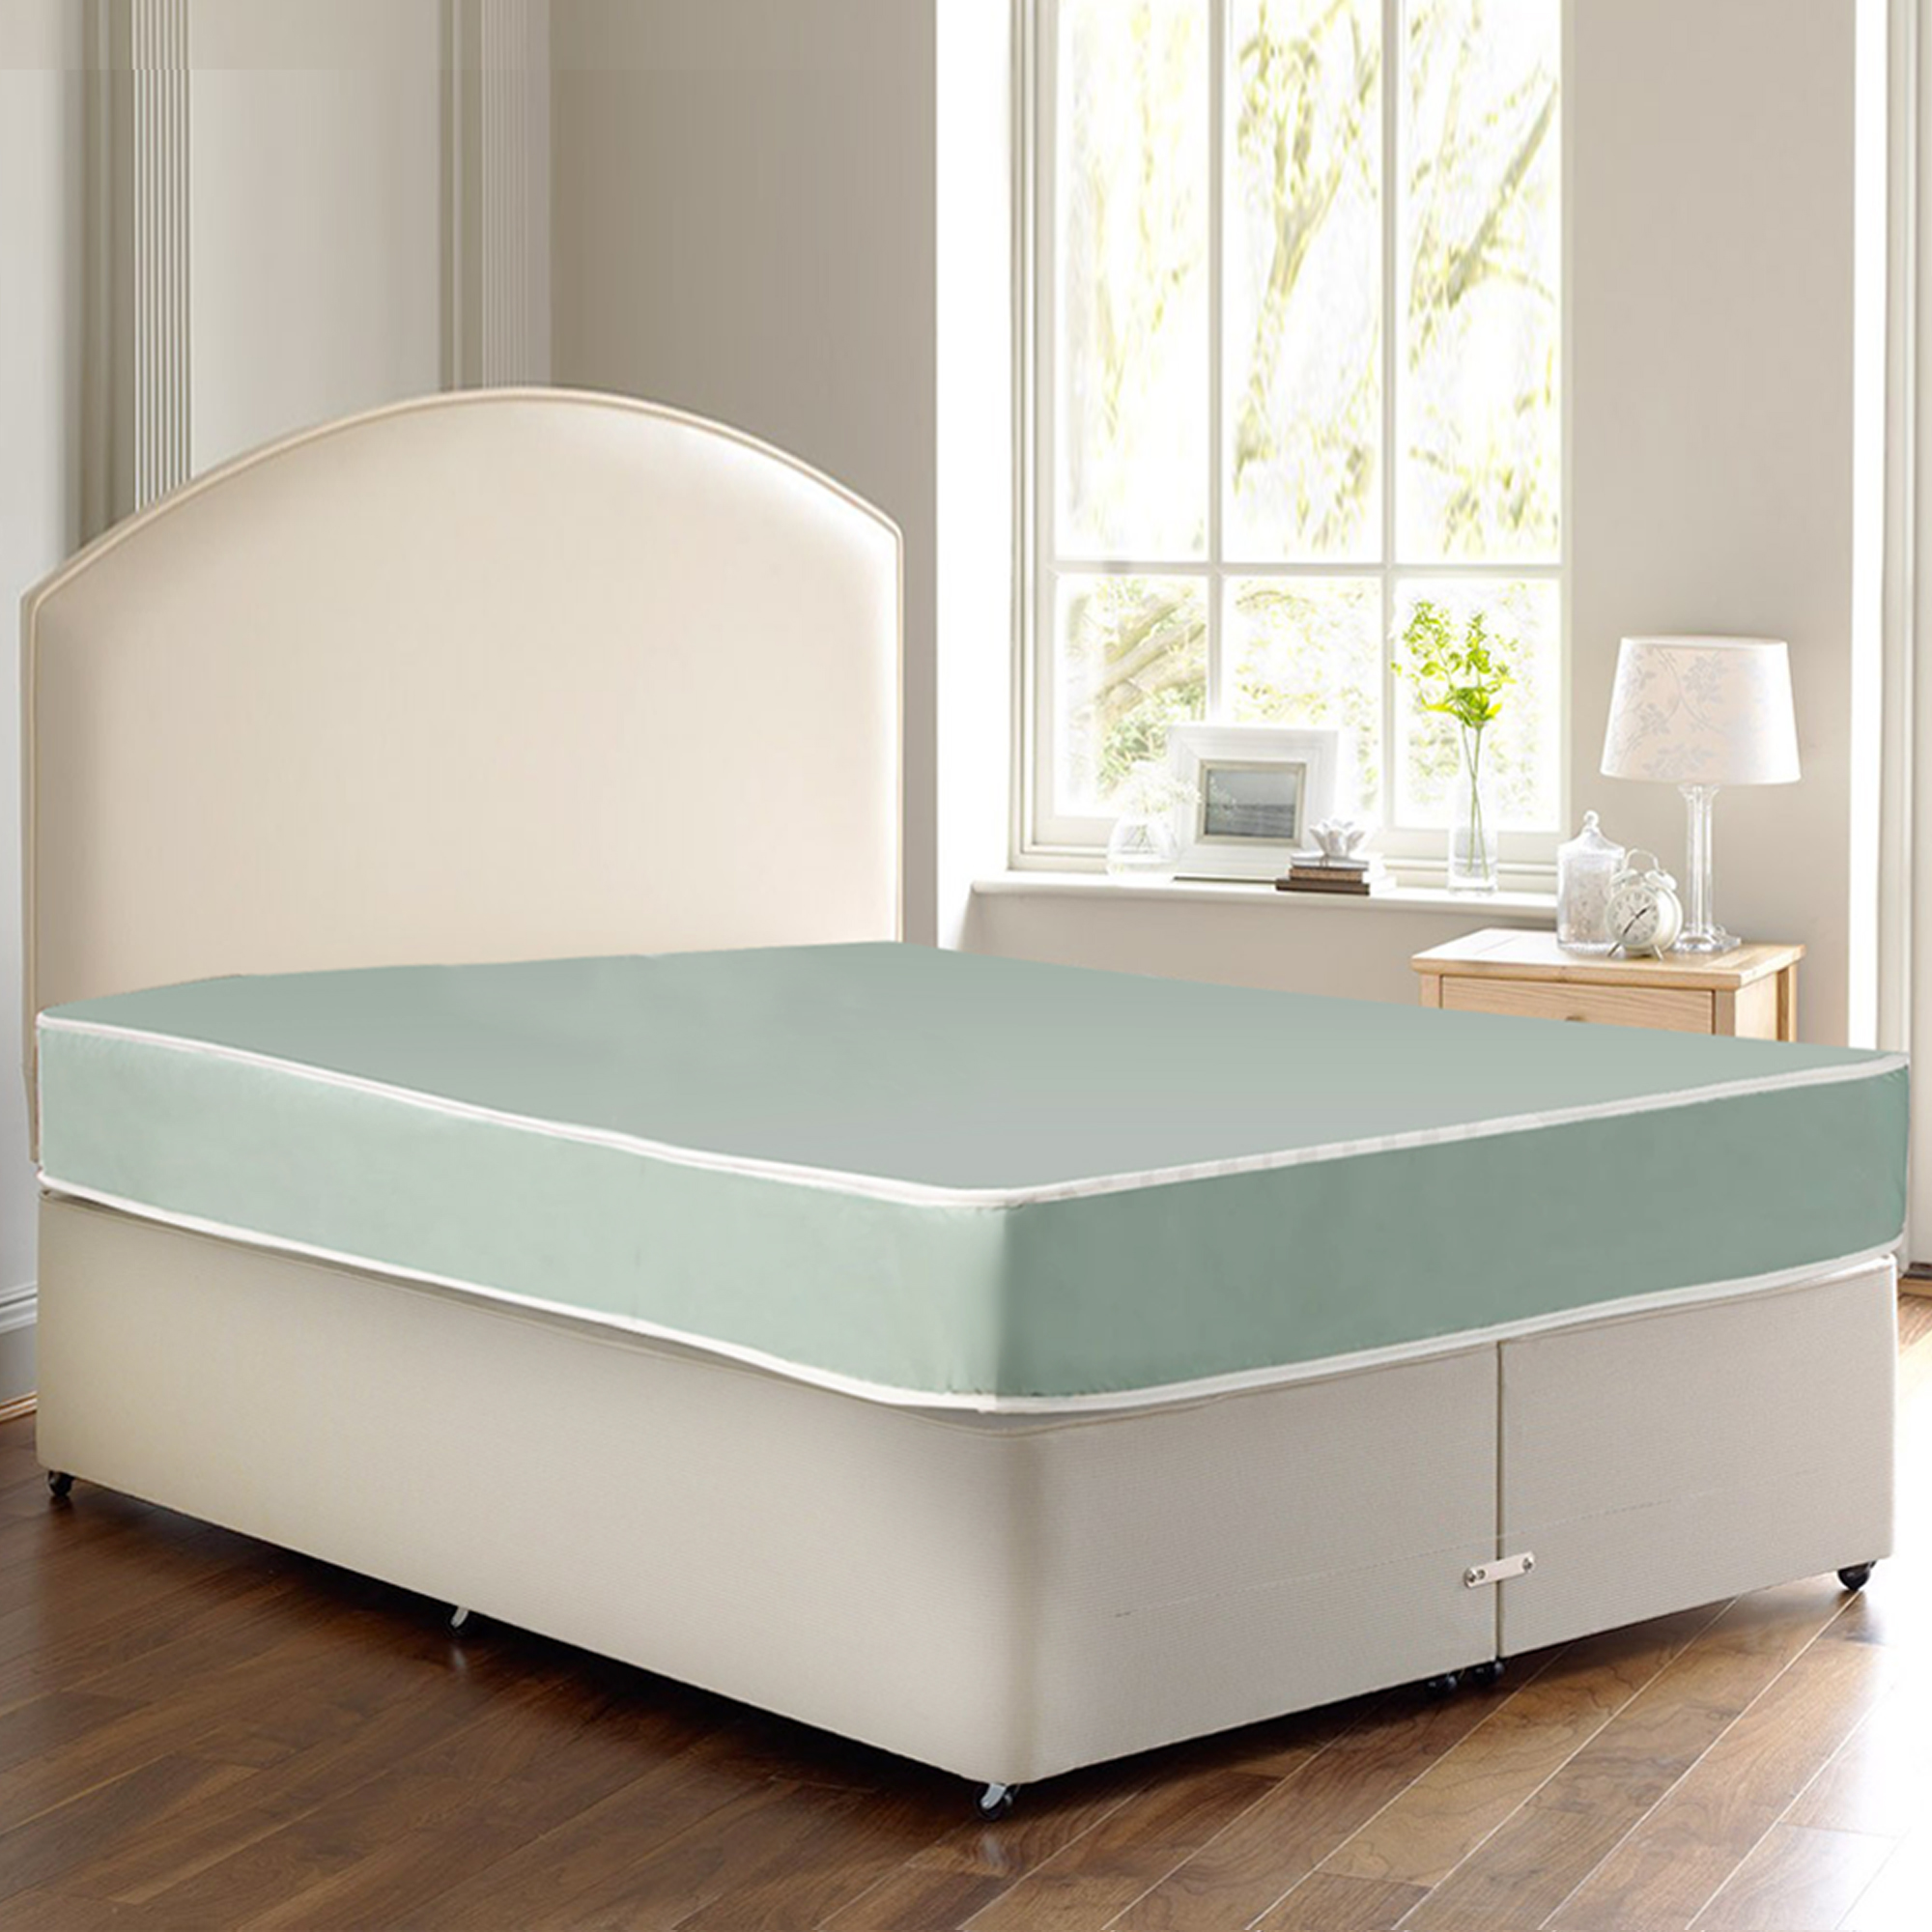 WAYTON Waterproof Vinyl Tight Top 8 Inch Innerspring Mattress